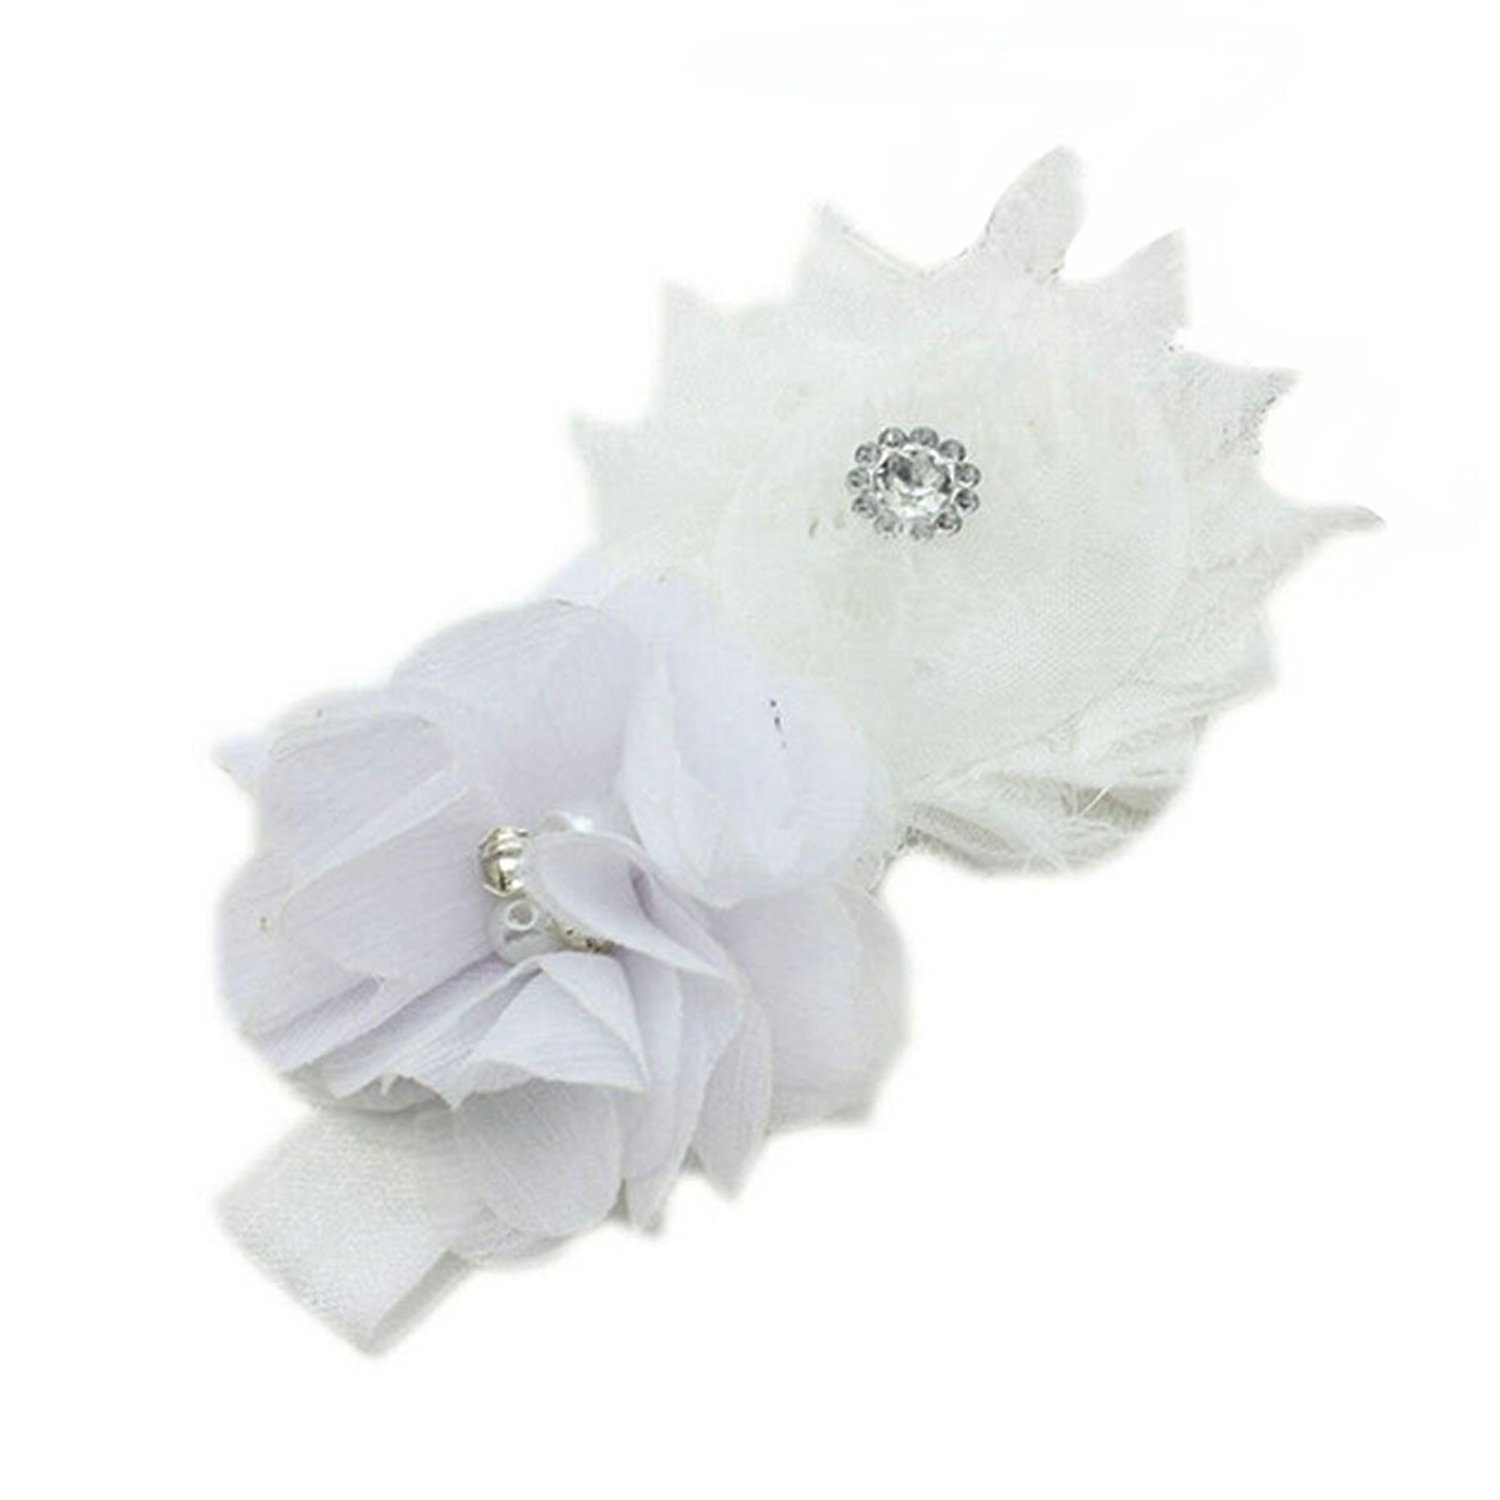 Buy Yonger Baby Pearl Flowers Hairband Cute Headbands Lace Infant